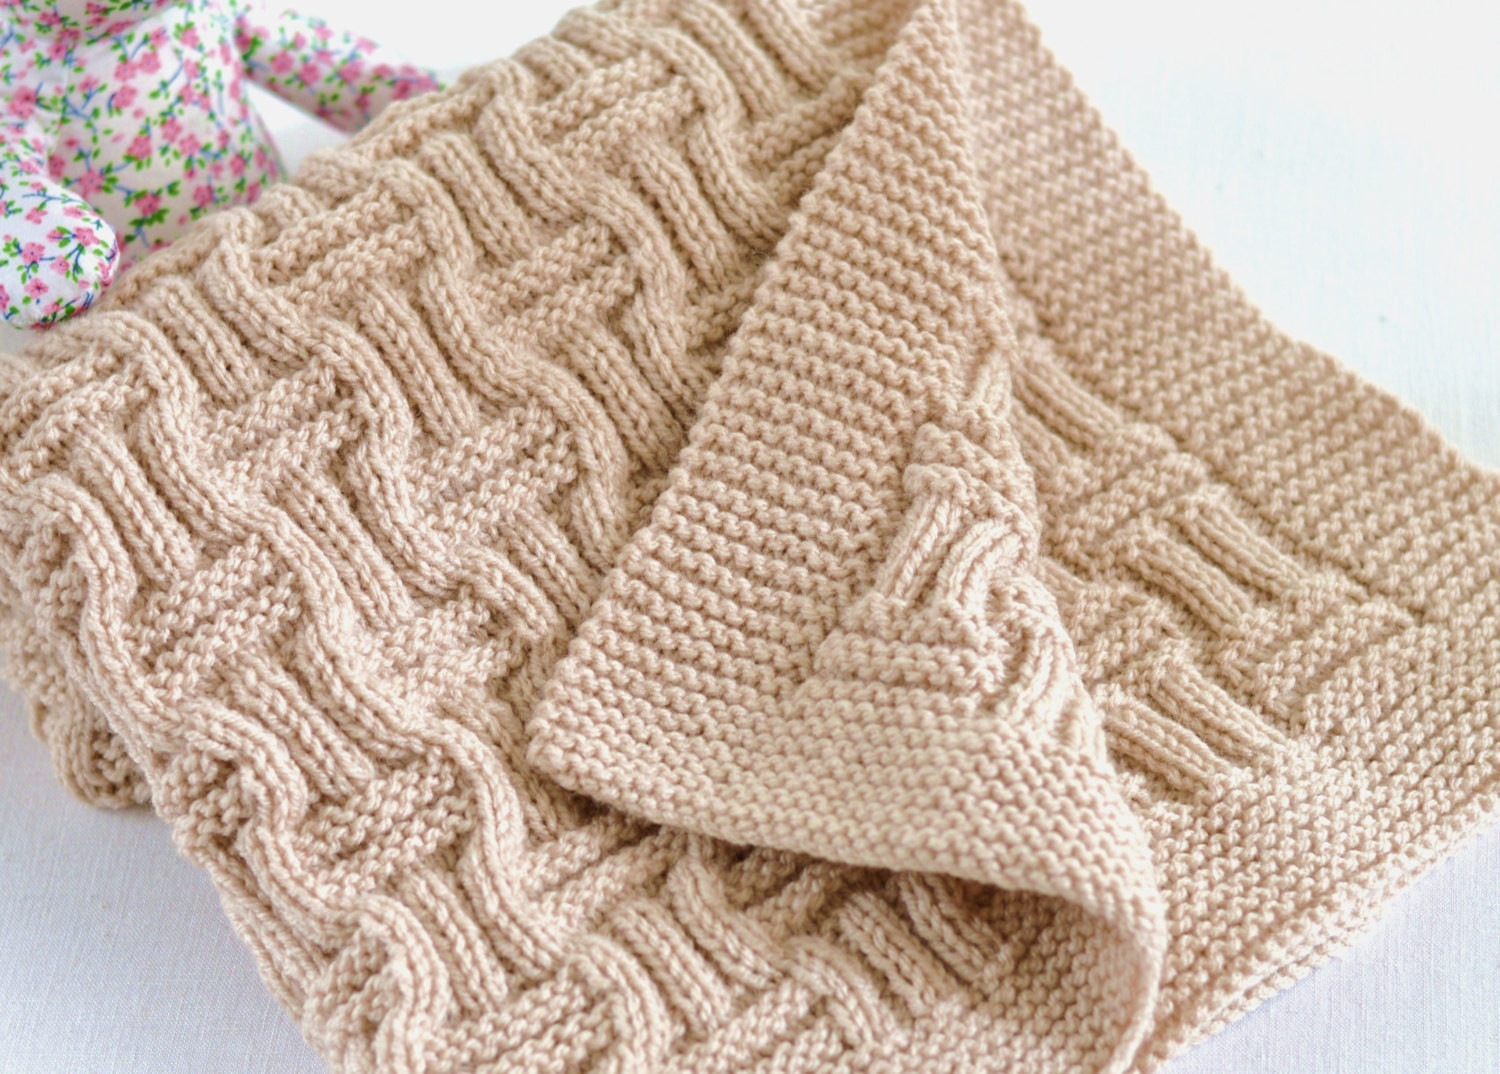 Unique Easy Knitting Patterns for Beginners Baby Crochet and Knit Easy Knitting for Beginners Of Charming 43 Images Easy Knitting for Beginners